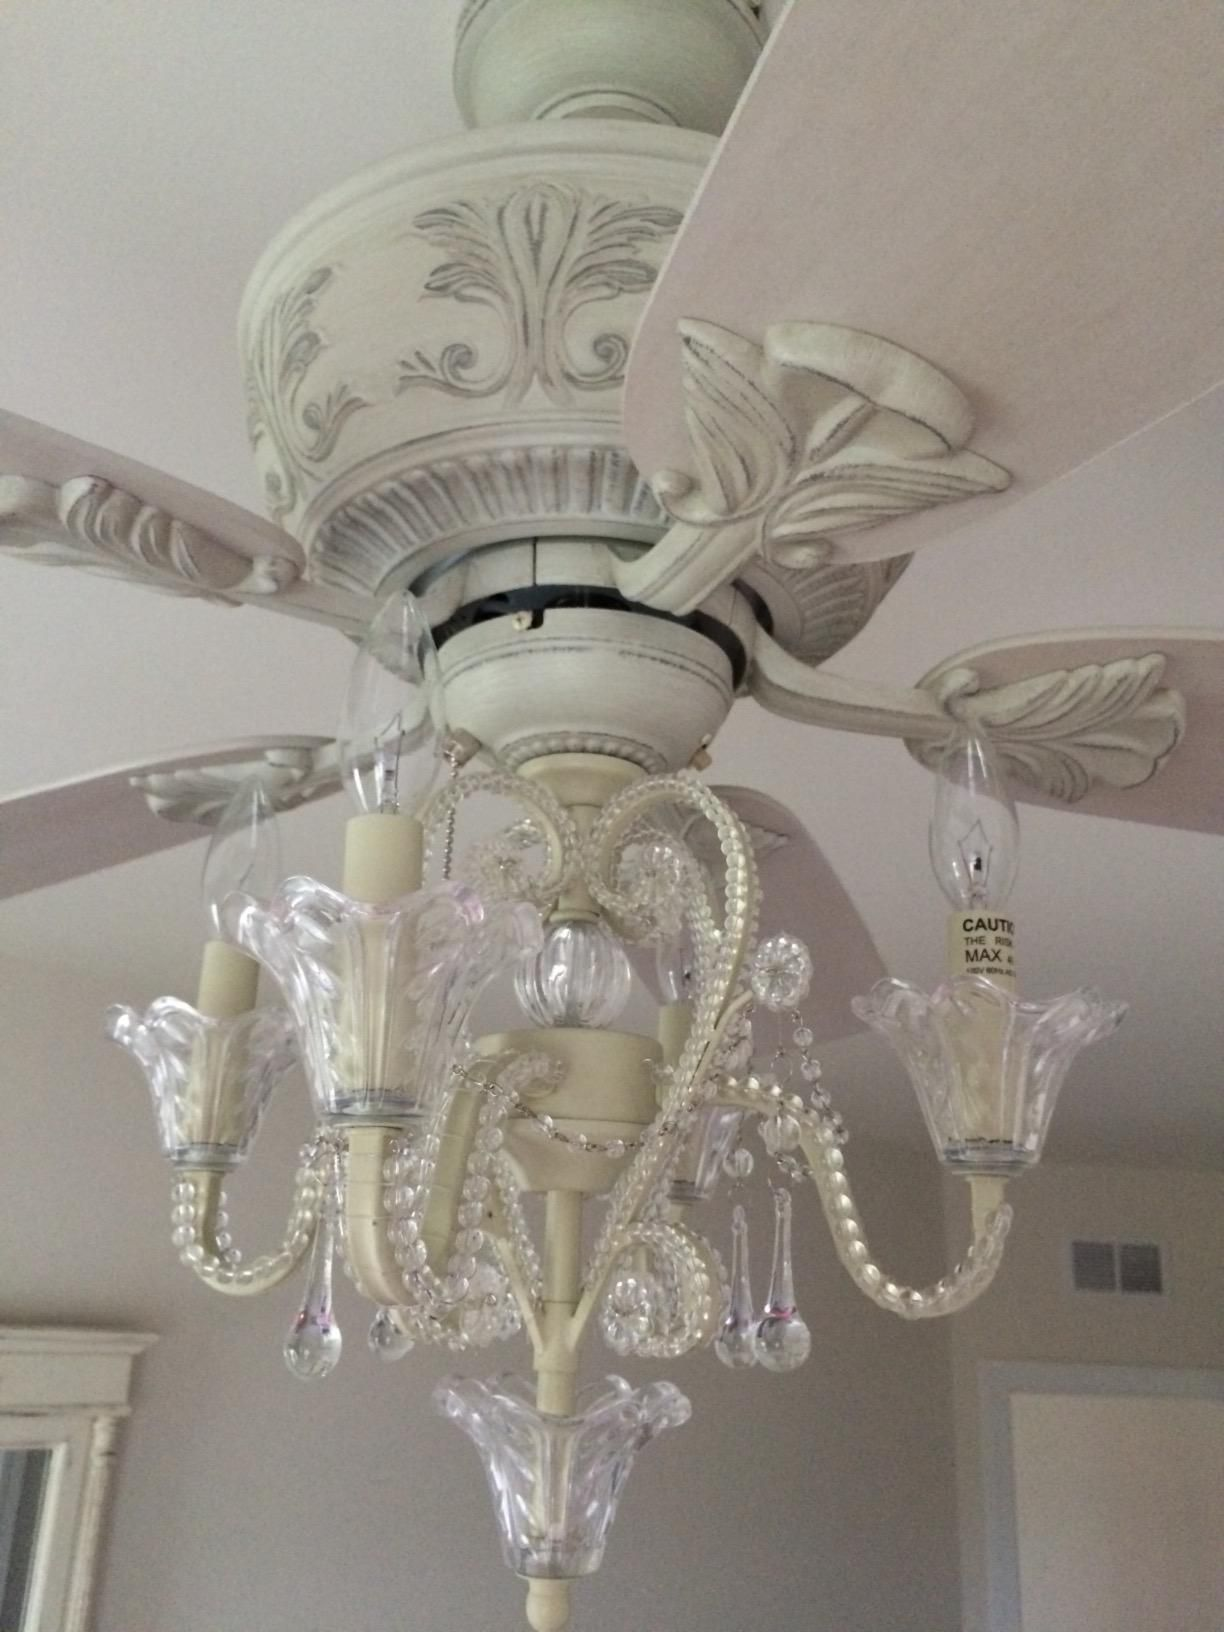 Charming Amazon.com: Crystal Bead Candelabra Antique White Ceiling Fan Light Kit:  Home Improvement